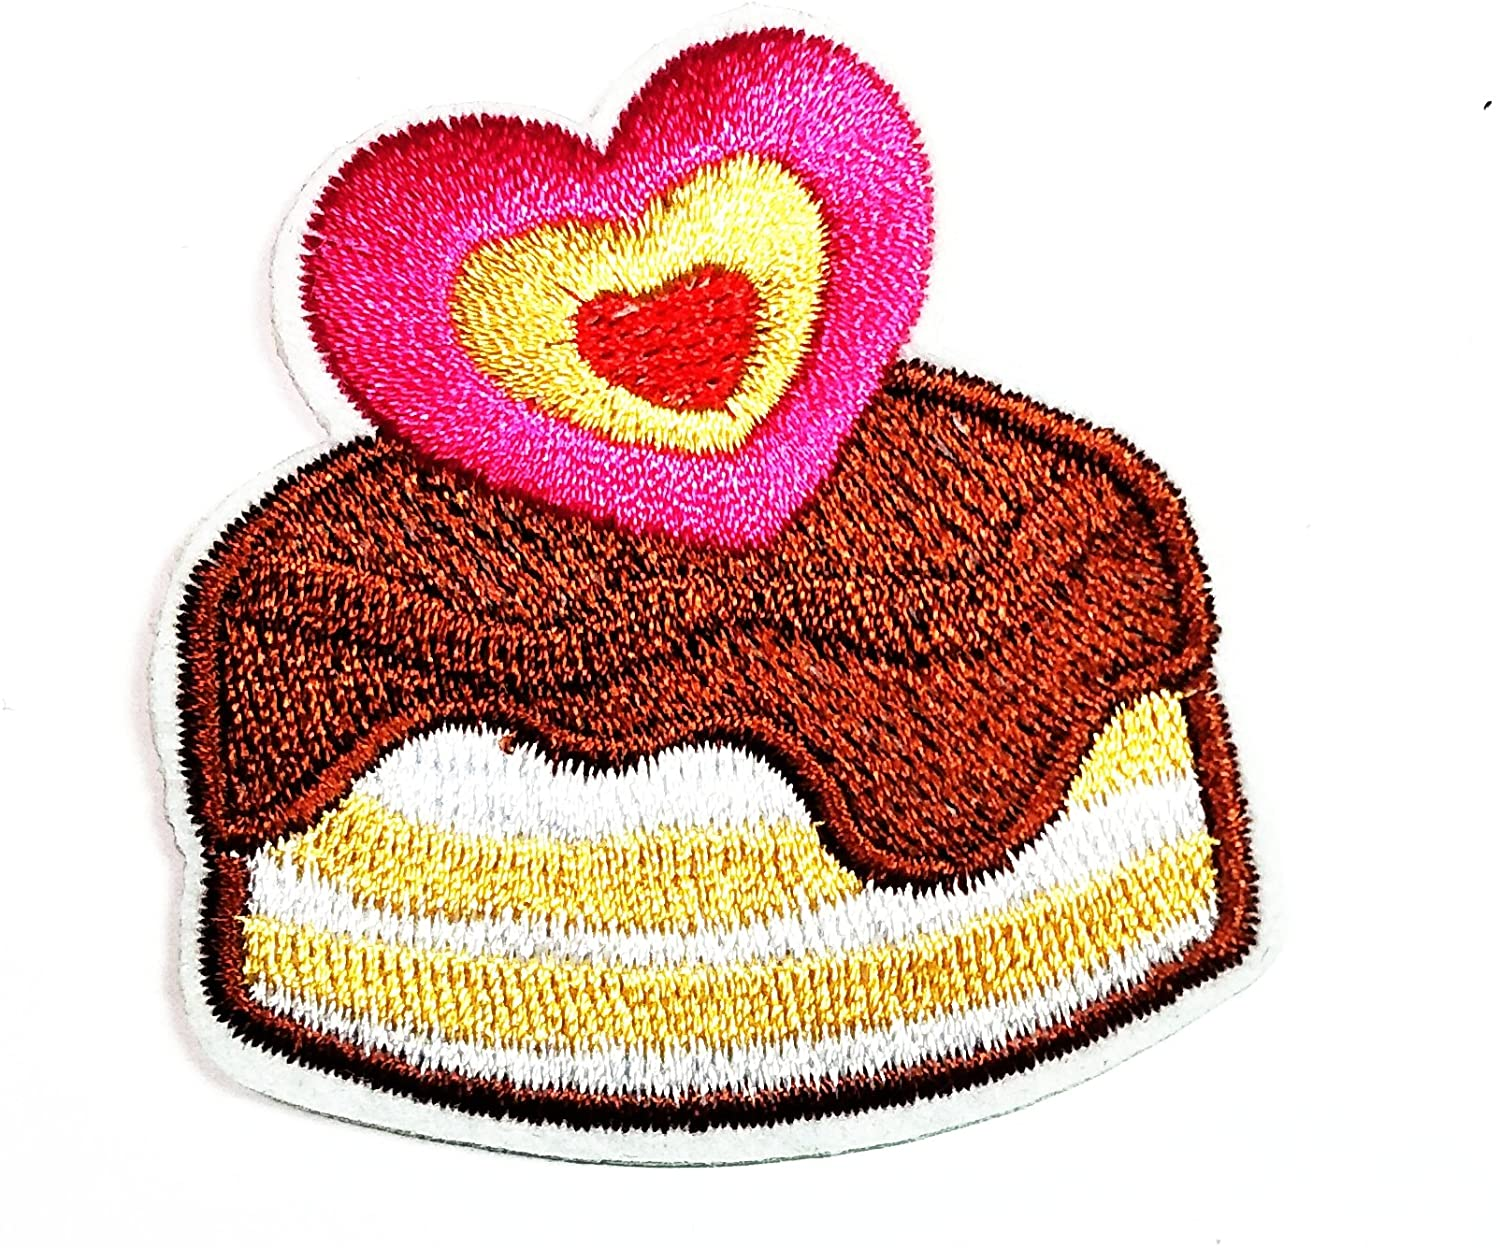 HHO Cute Cupcakes Pink heart Patch Embroidered DIY Patches, Cute Applique Sew Iron on Kids Craft Patch for Bags Jackets Jeans Clothes